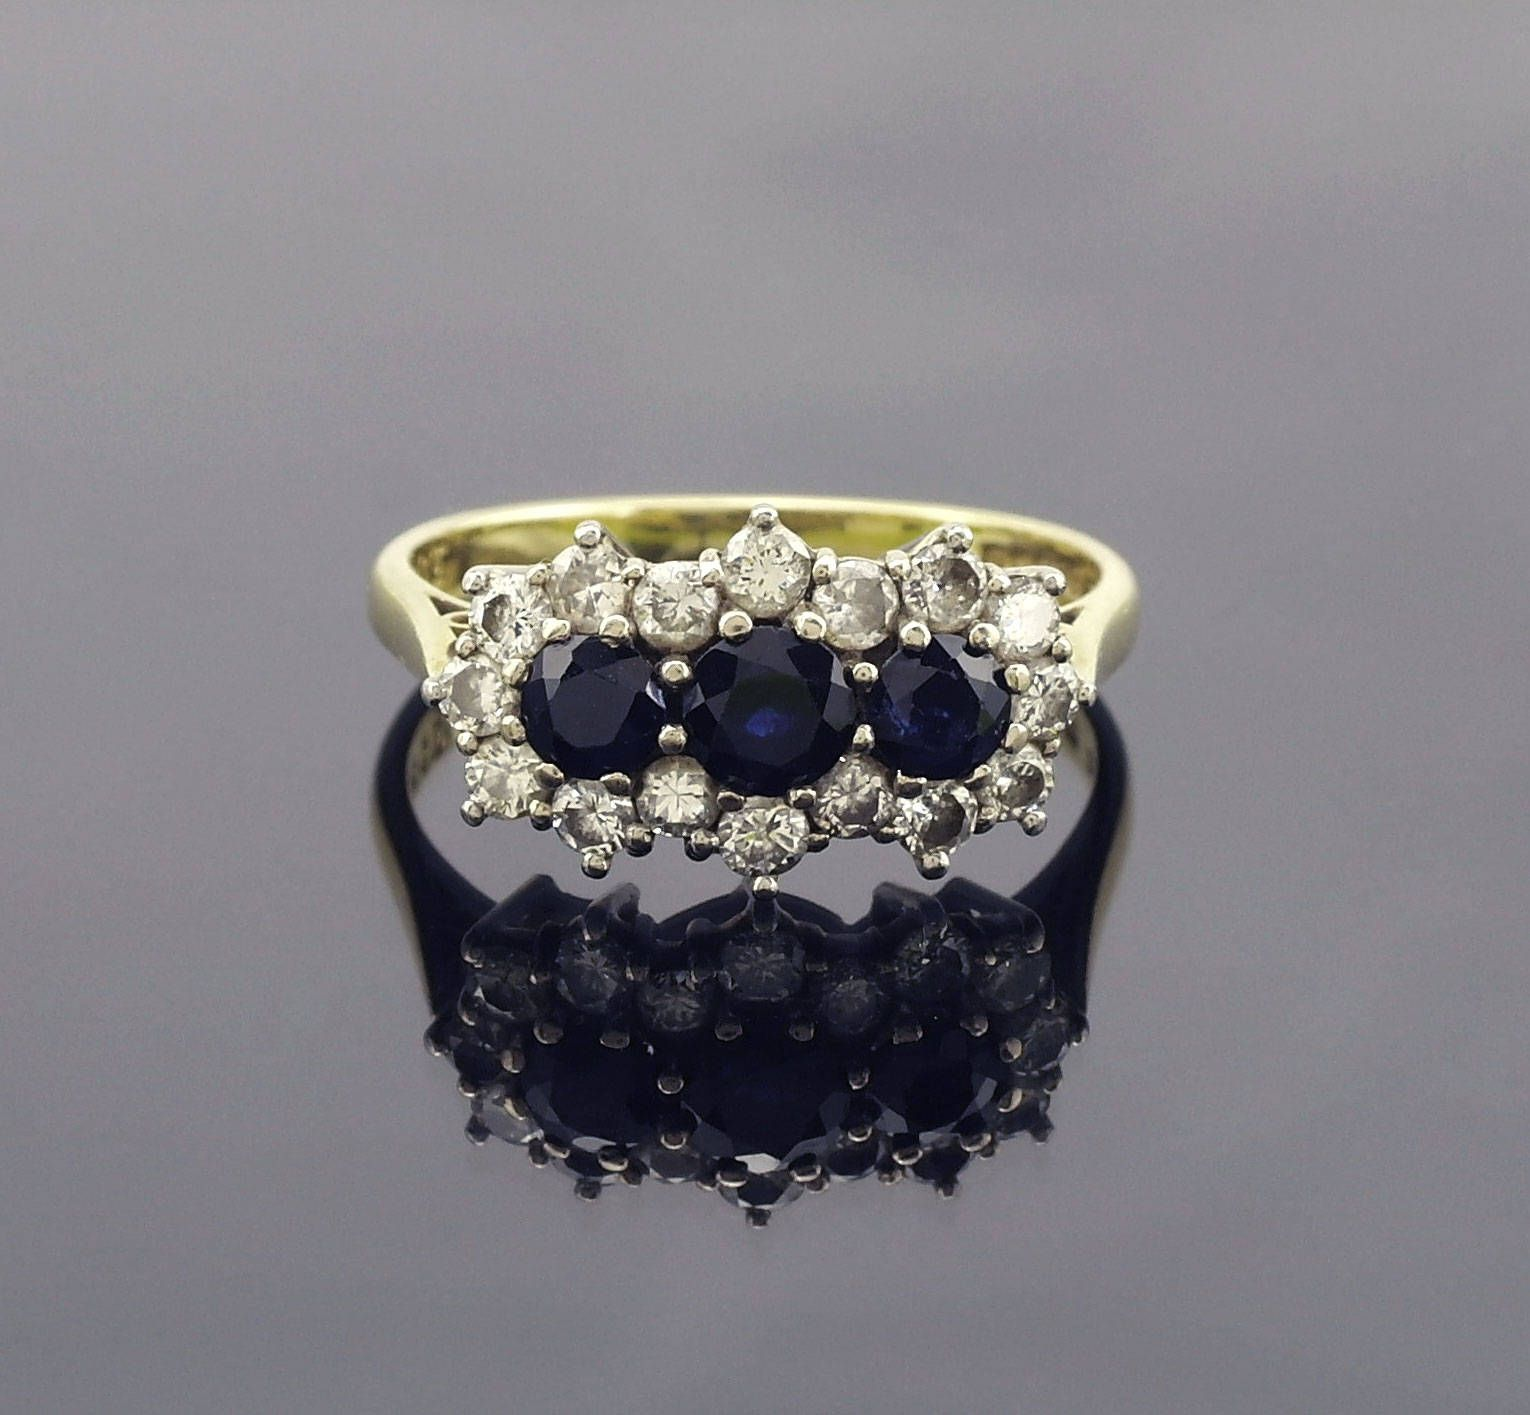 Vintage Sapphire Diamond Gold Ring Size 7 Us O Uk Vintage Engagement Ring Gift For Her Pre Owned With Images Vintage Sapphire Ruby Engagement Ring Vintage Engagement Ring Gift